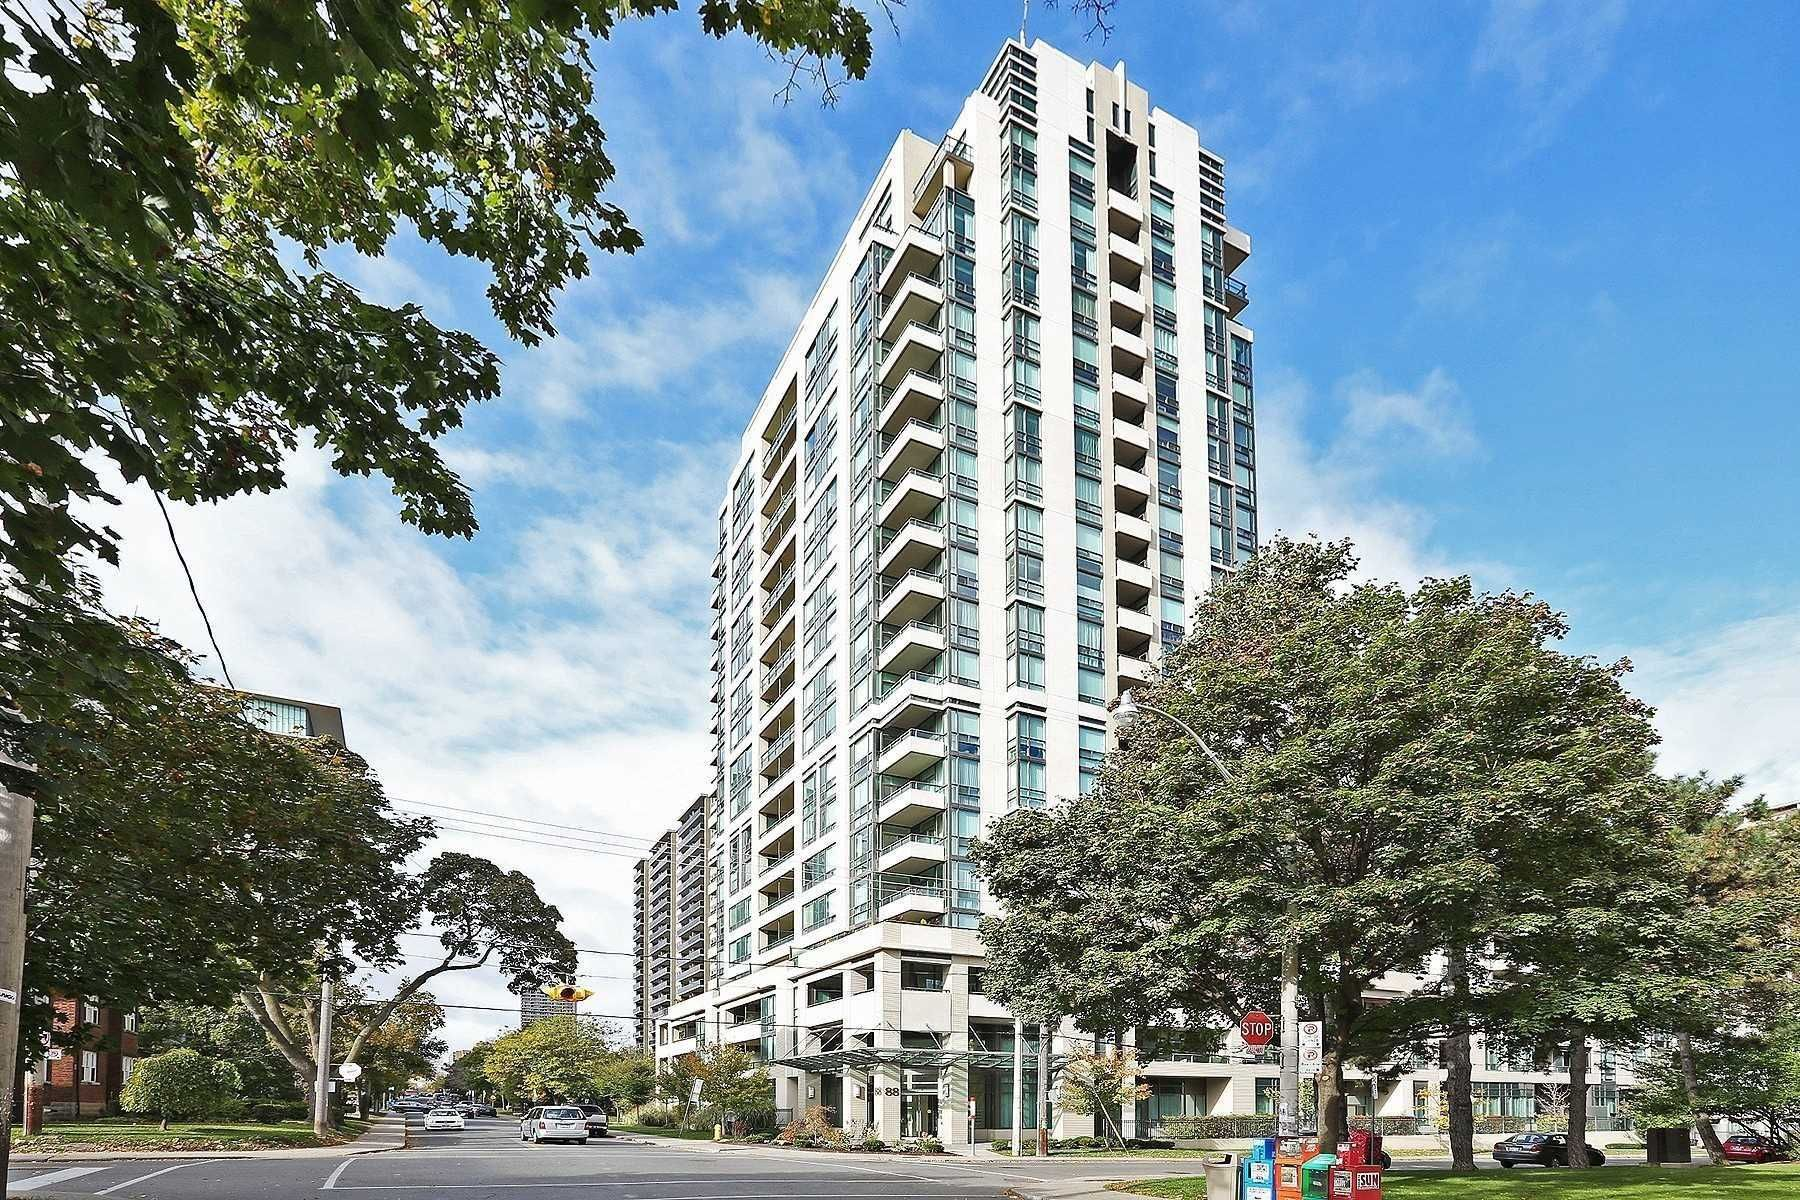 88 Broadway Ave, unit 1002 for rent in Toronto - image #1